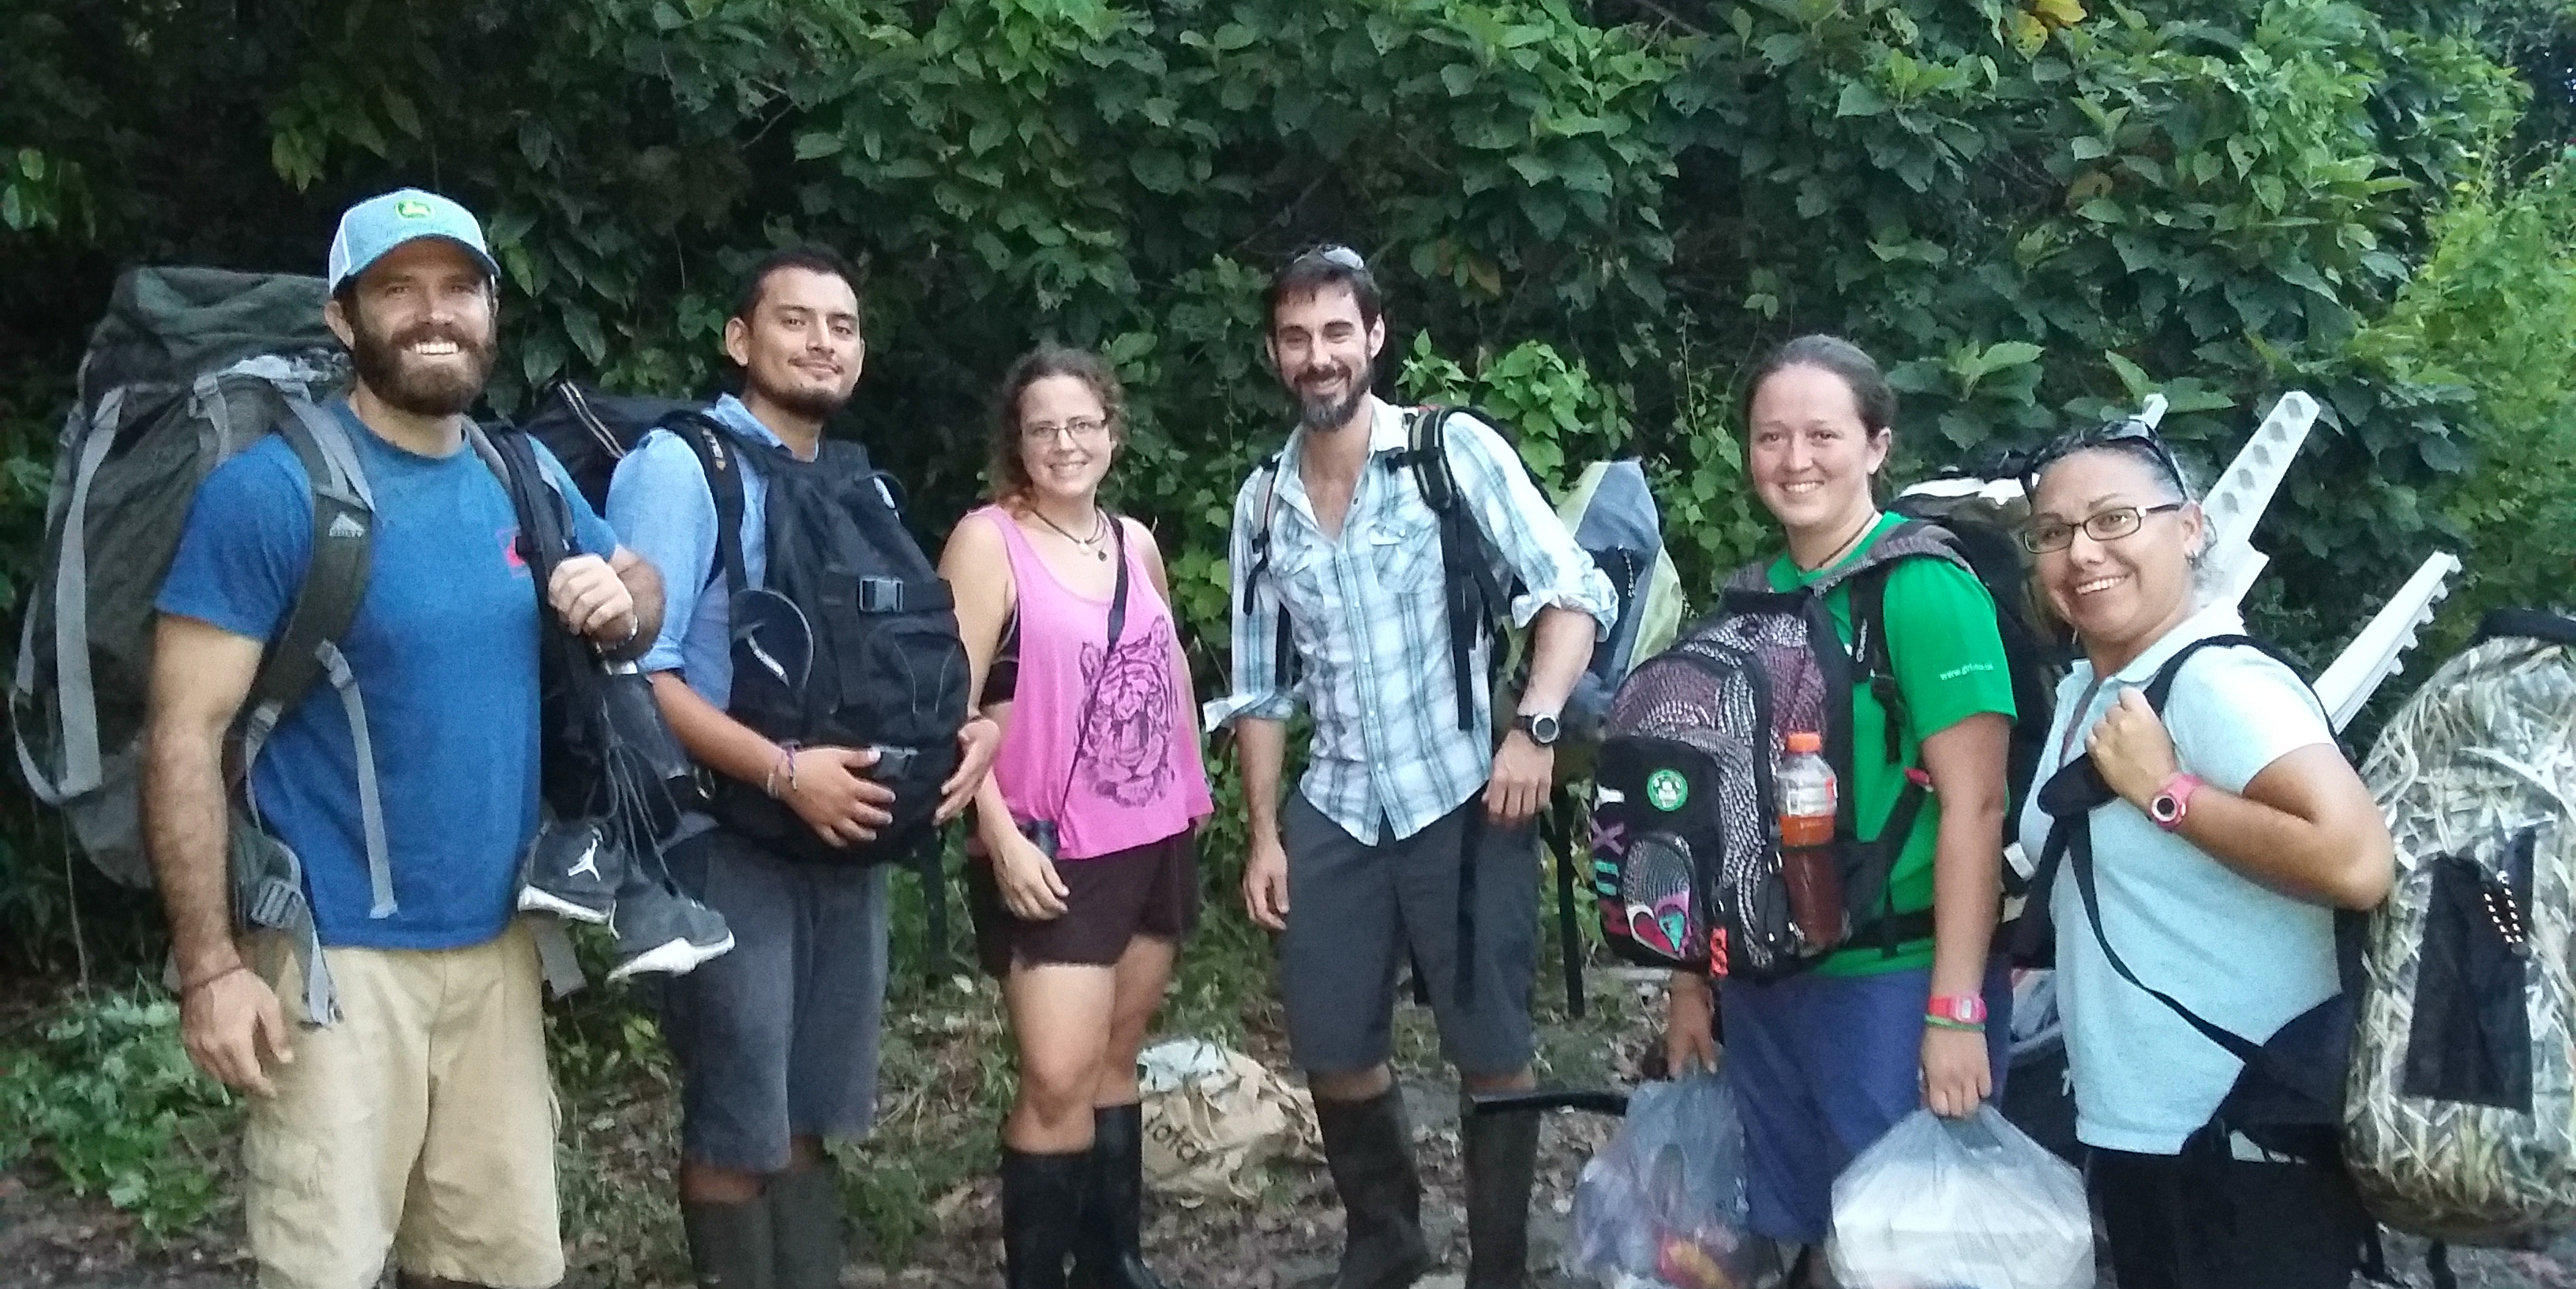 Participants prepare for to trek through the jungles of Jalova on a data collection trip. This science expedition makes our list of the best volunteer abroad programs for adults.